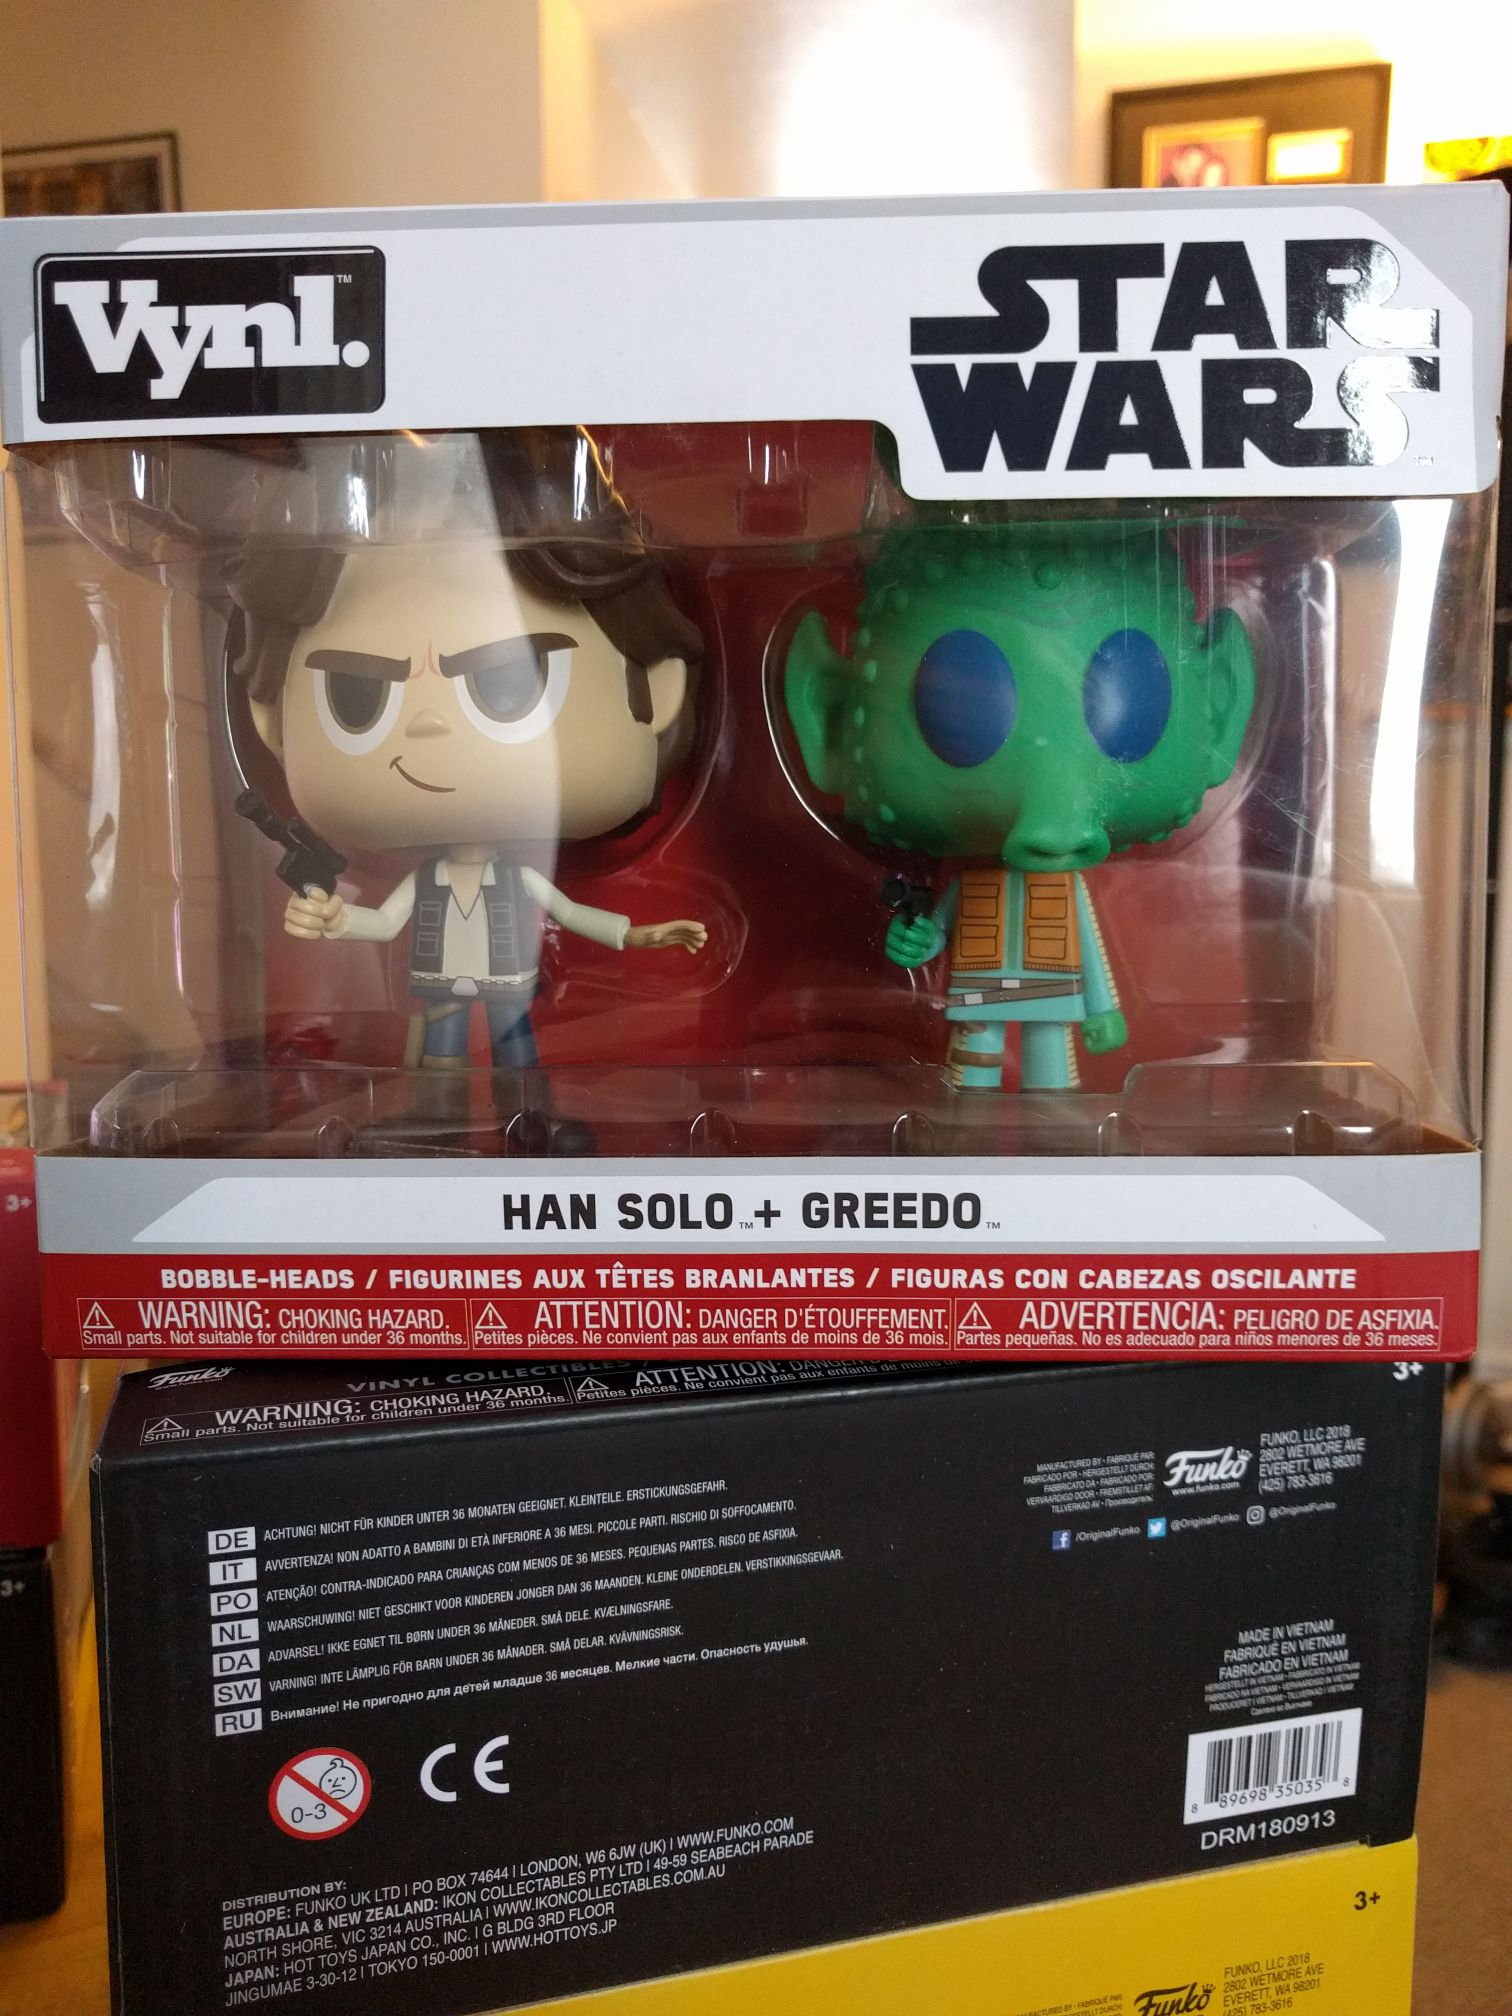 Han Solo + Greedo Funko - Vynl front image (front cover)